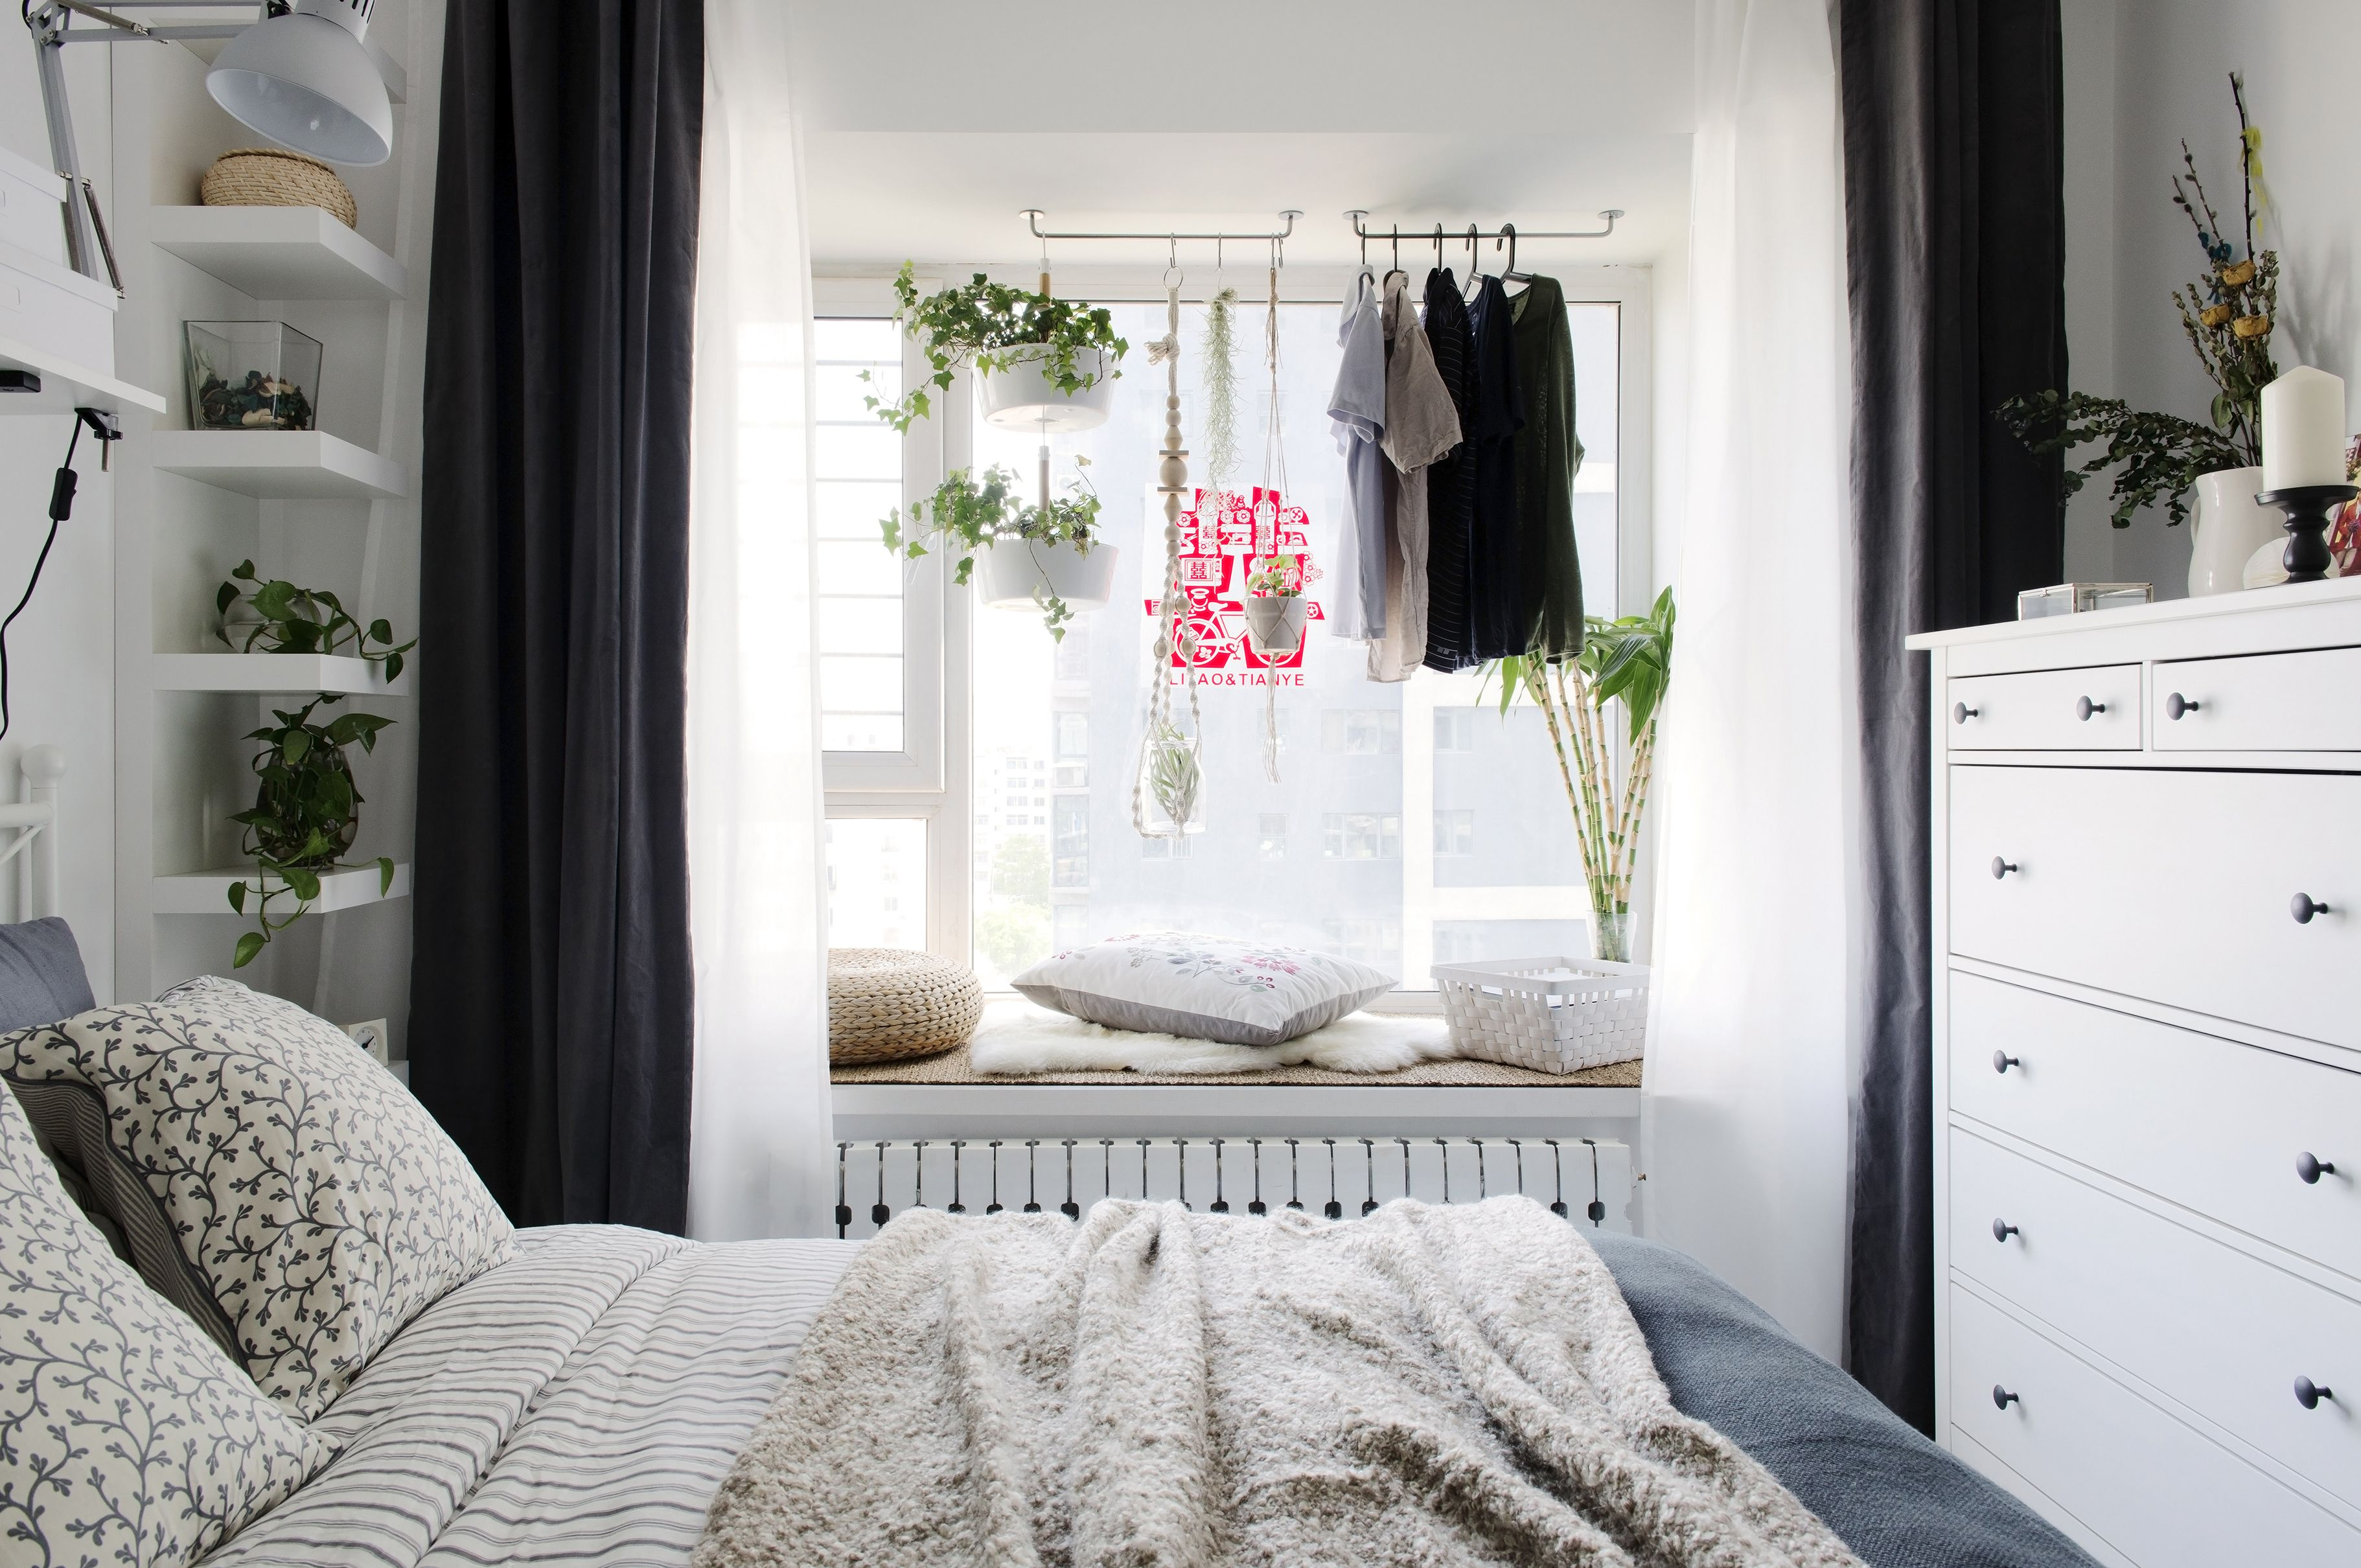 Bedroom Gallery Small Room Interior Relaxing Cool Curtains